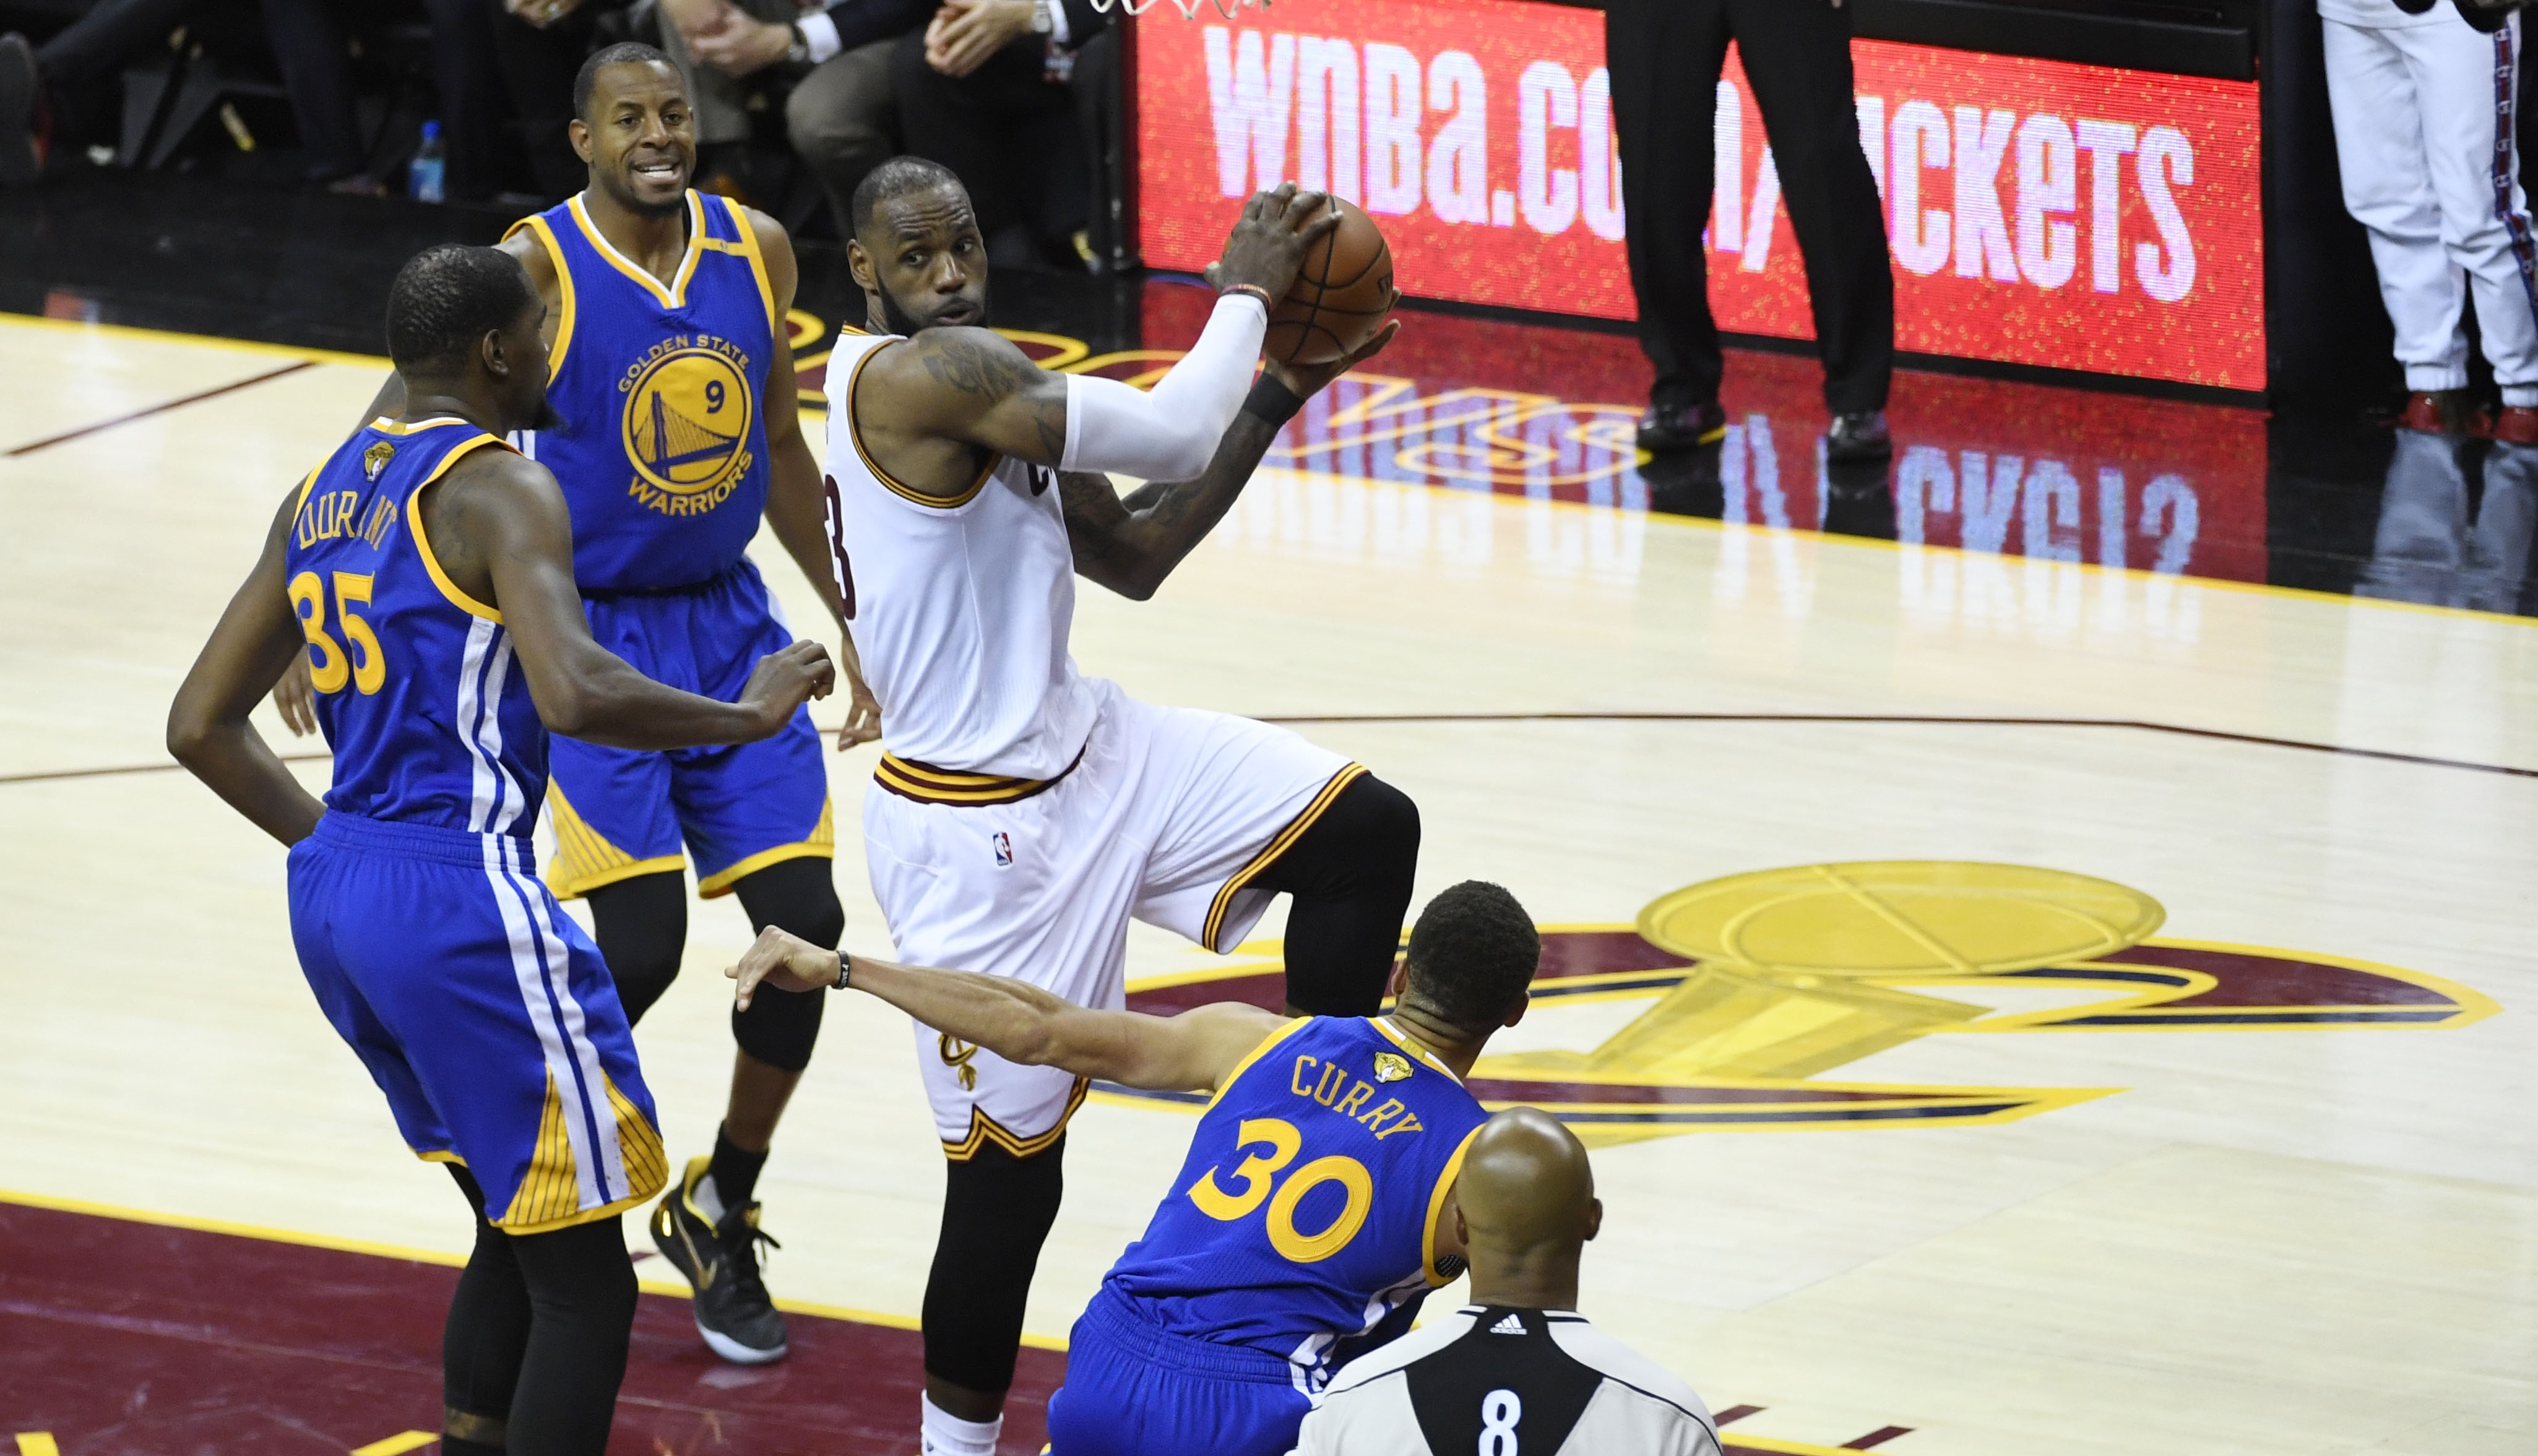 Jun 9, 2017; Cleveland, OH, USA; Cleveland Cavaliers forward LeBron James (23) drives to the basket against Golden State Warriors forward Kevin Durant (35) and guard Stephen Curry (30) during the second half in game four of the 2017 NBA Finals at Quicken Loans Arena. Mandatory Credit: Kyle Terada-USA TODAY Sports